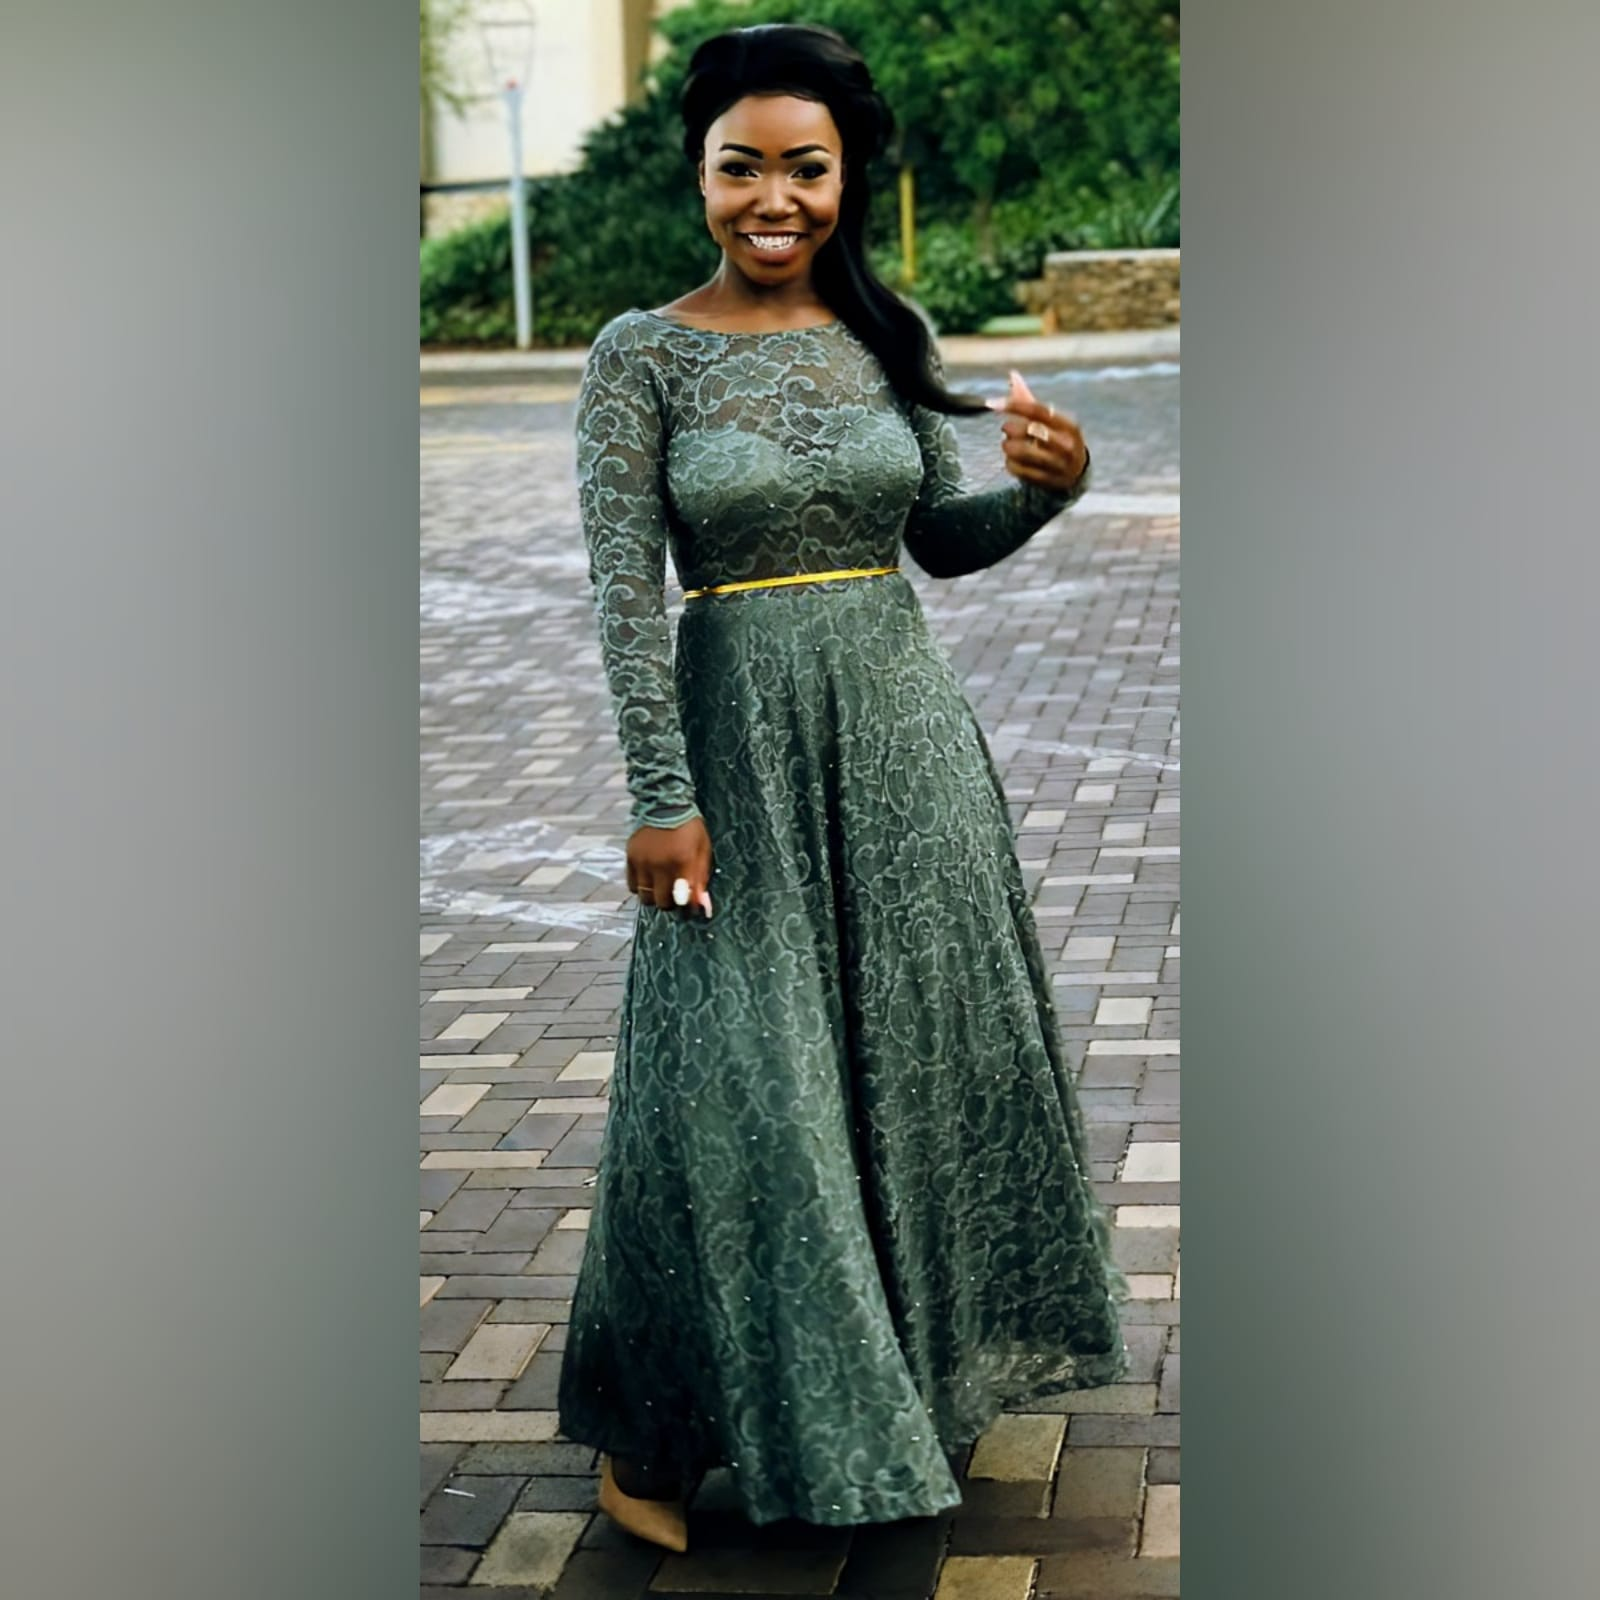 Tea length fully lace olive green evening dress 2 reneilwe looked charming with her tea length fully lace olive green evening dress. Bodice in sheer lace with long sleeves and open back for a feminine touch. With scattered gold beads and a thin removable gold belt to give it a chic look.